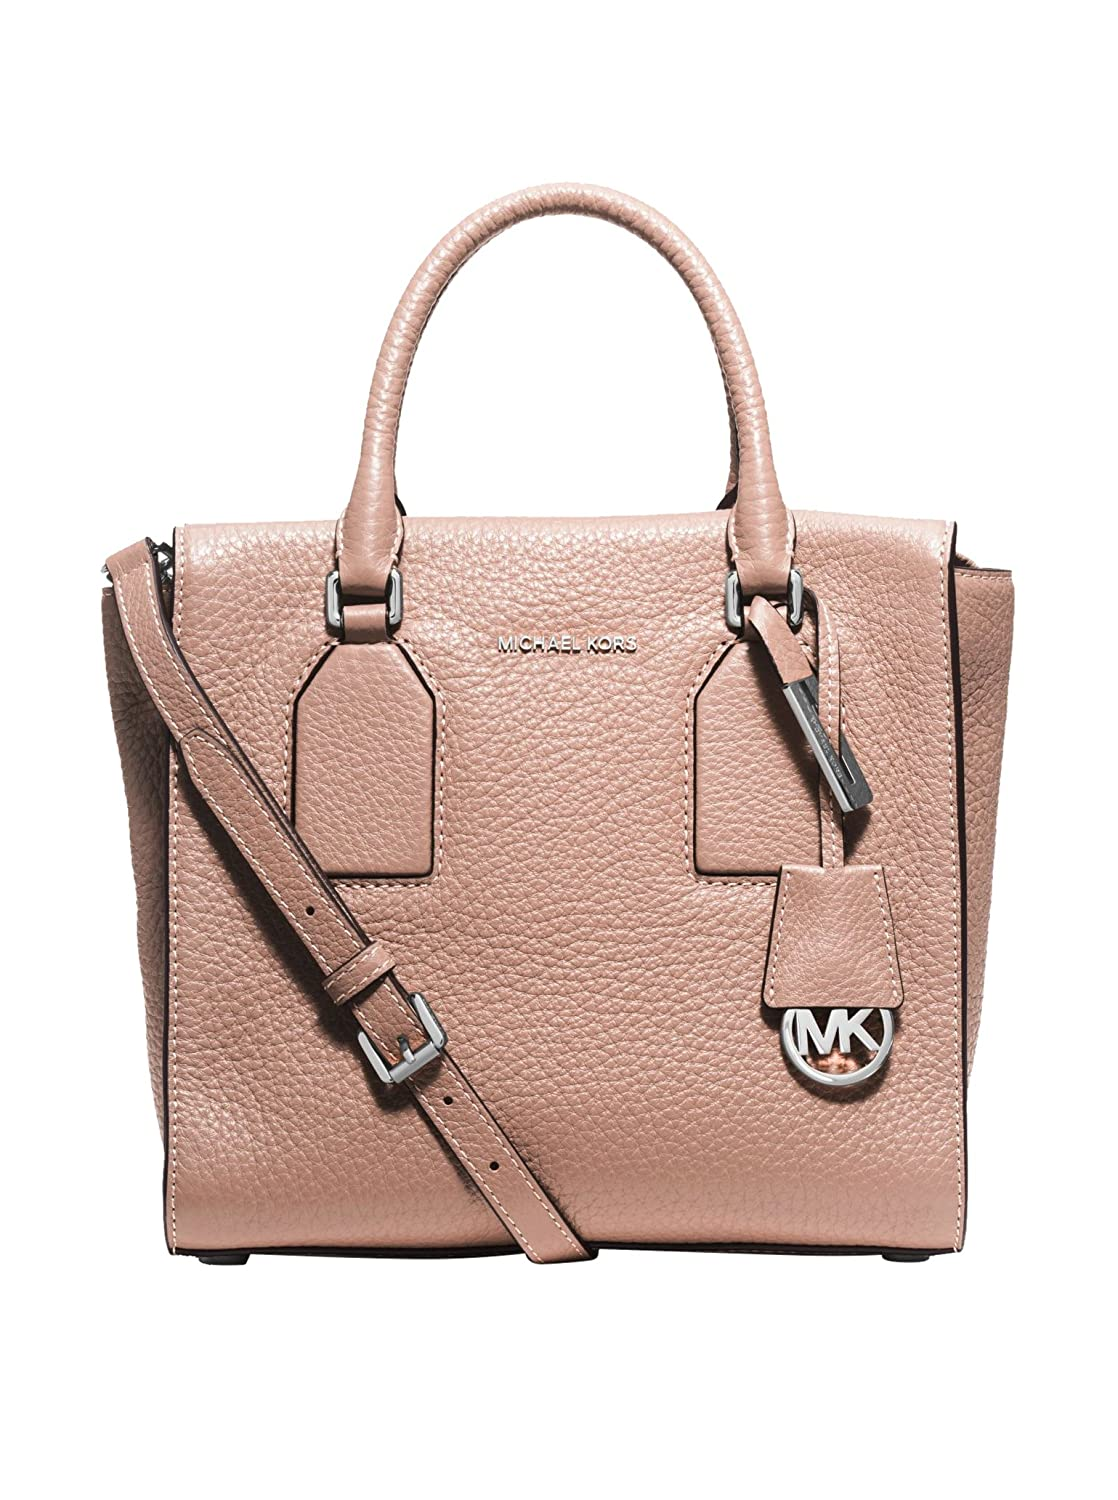 857f628ff364 Michael Michael Kors Women's Selby Medium Leather Satchel, Ballet:  Handbags: Amazon.com